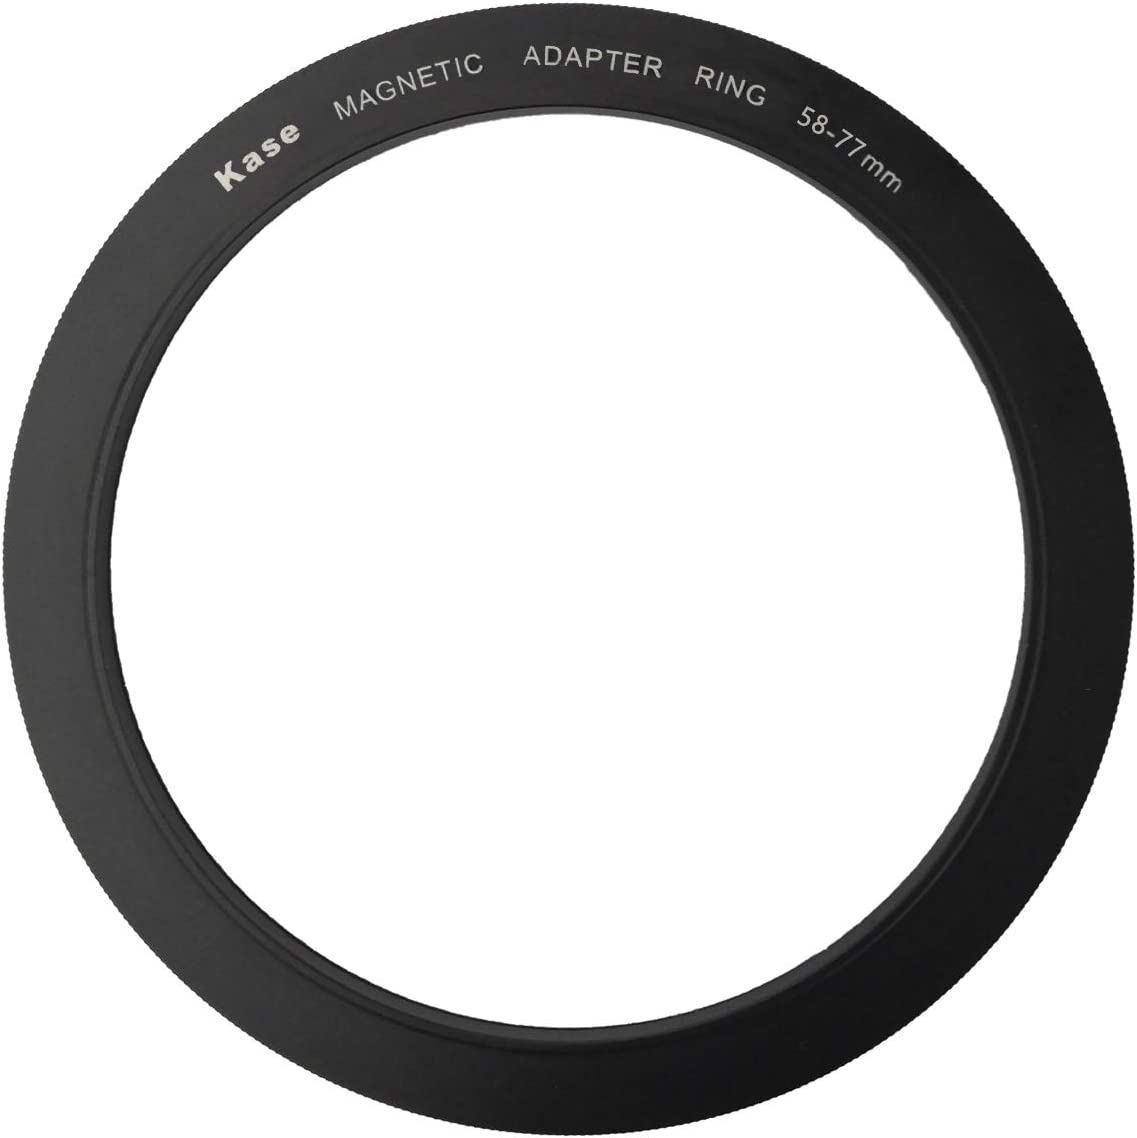 Kase Wolverine 58mm to 77mm Magnetic Step Up Filter Ring Adapter 58 77